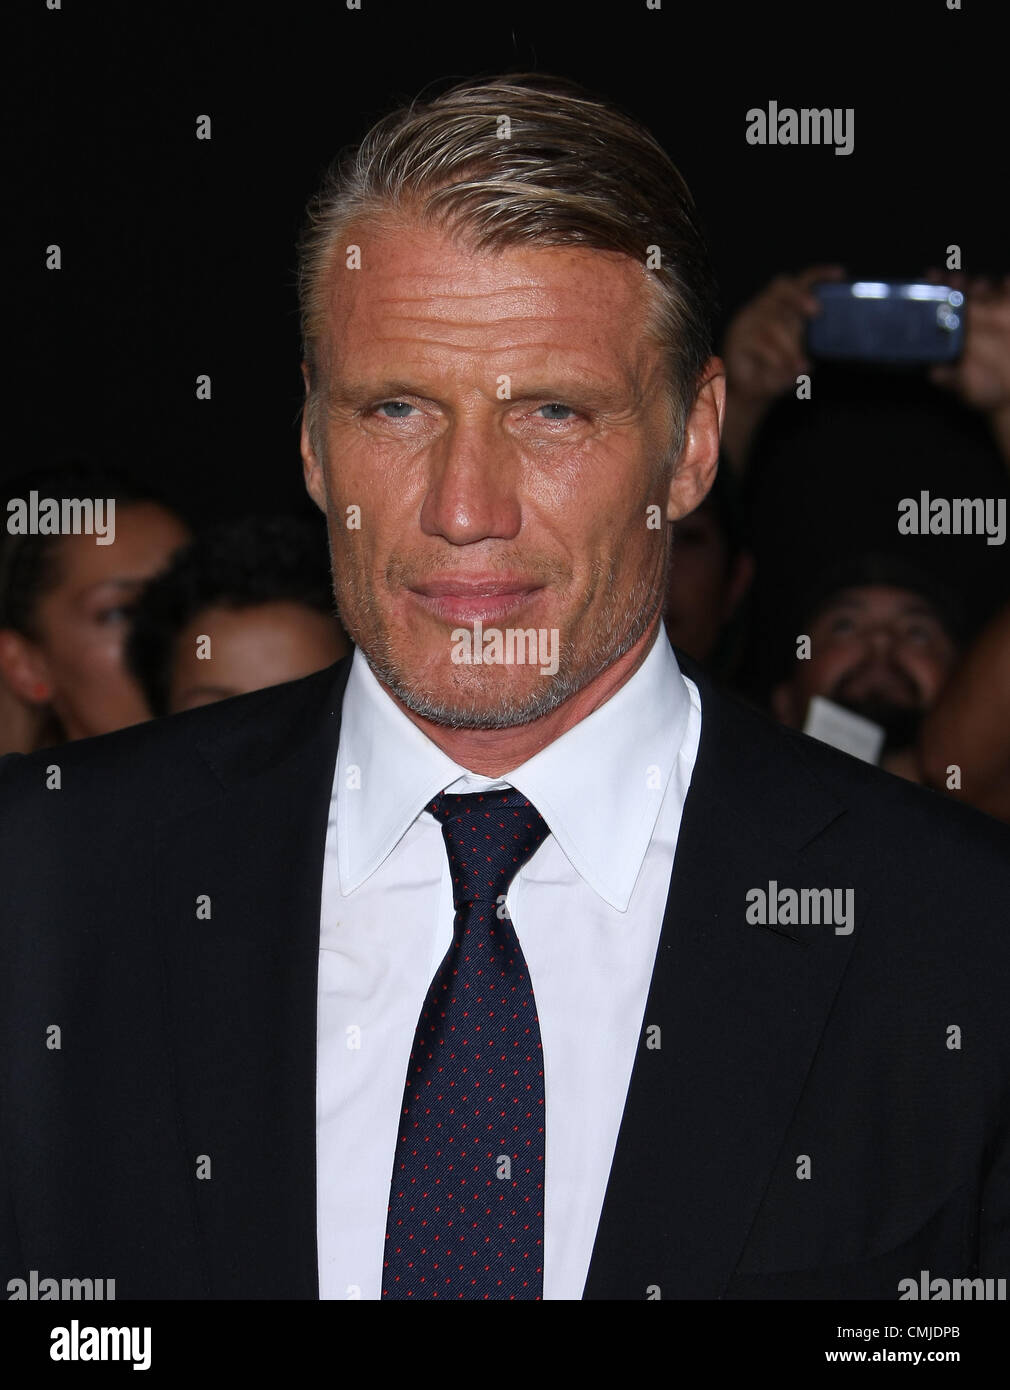 DOLPH LUNDGREN EXPENDABLES 2. WORLD PREMIERE HOLLYWOOD LOS ANGELES CALIFORNIA USA 15 August 2012 - Stock Image